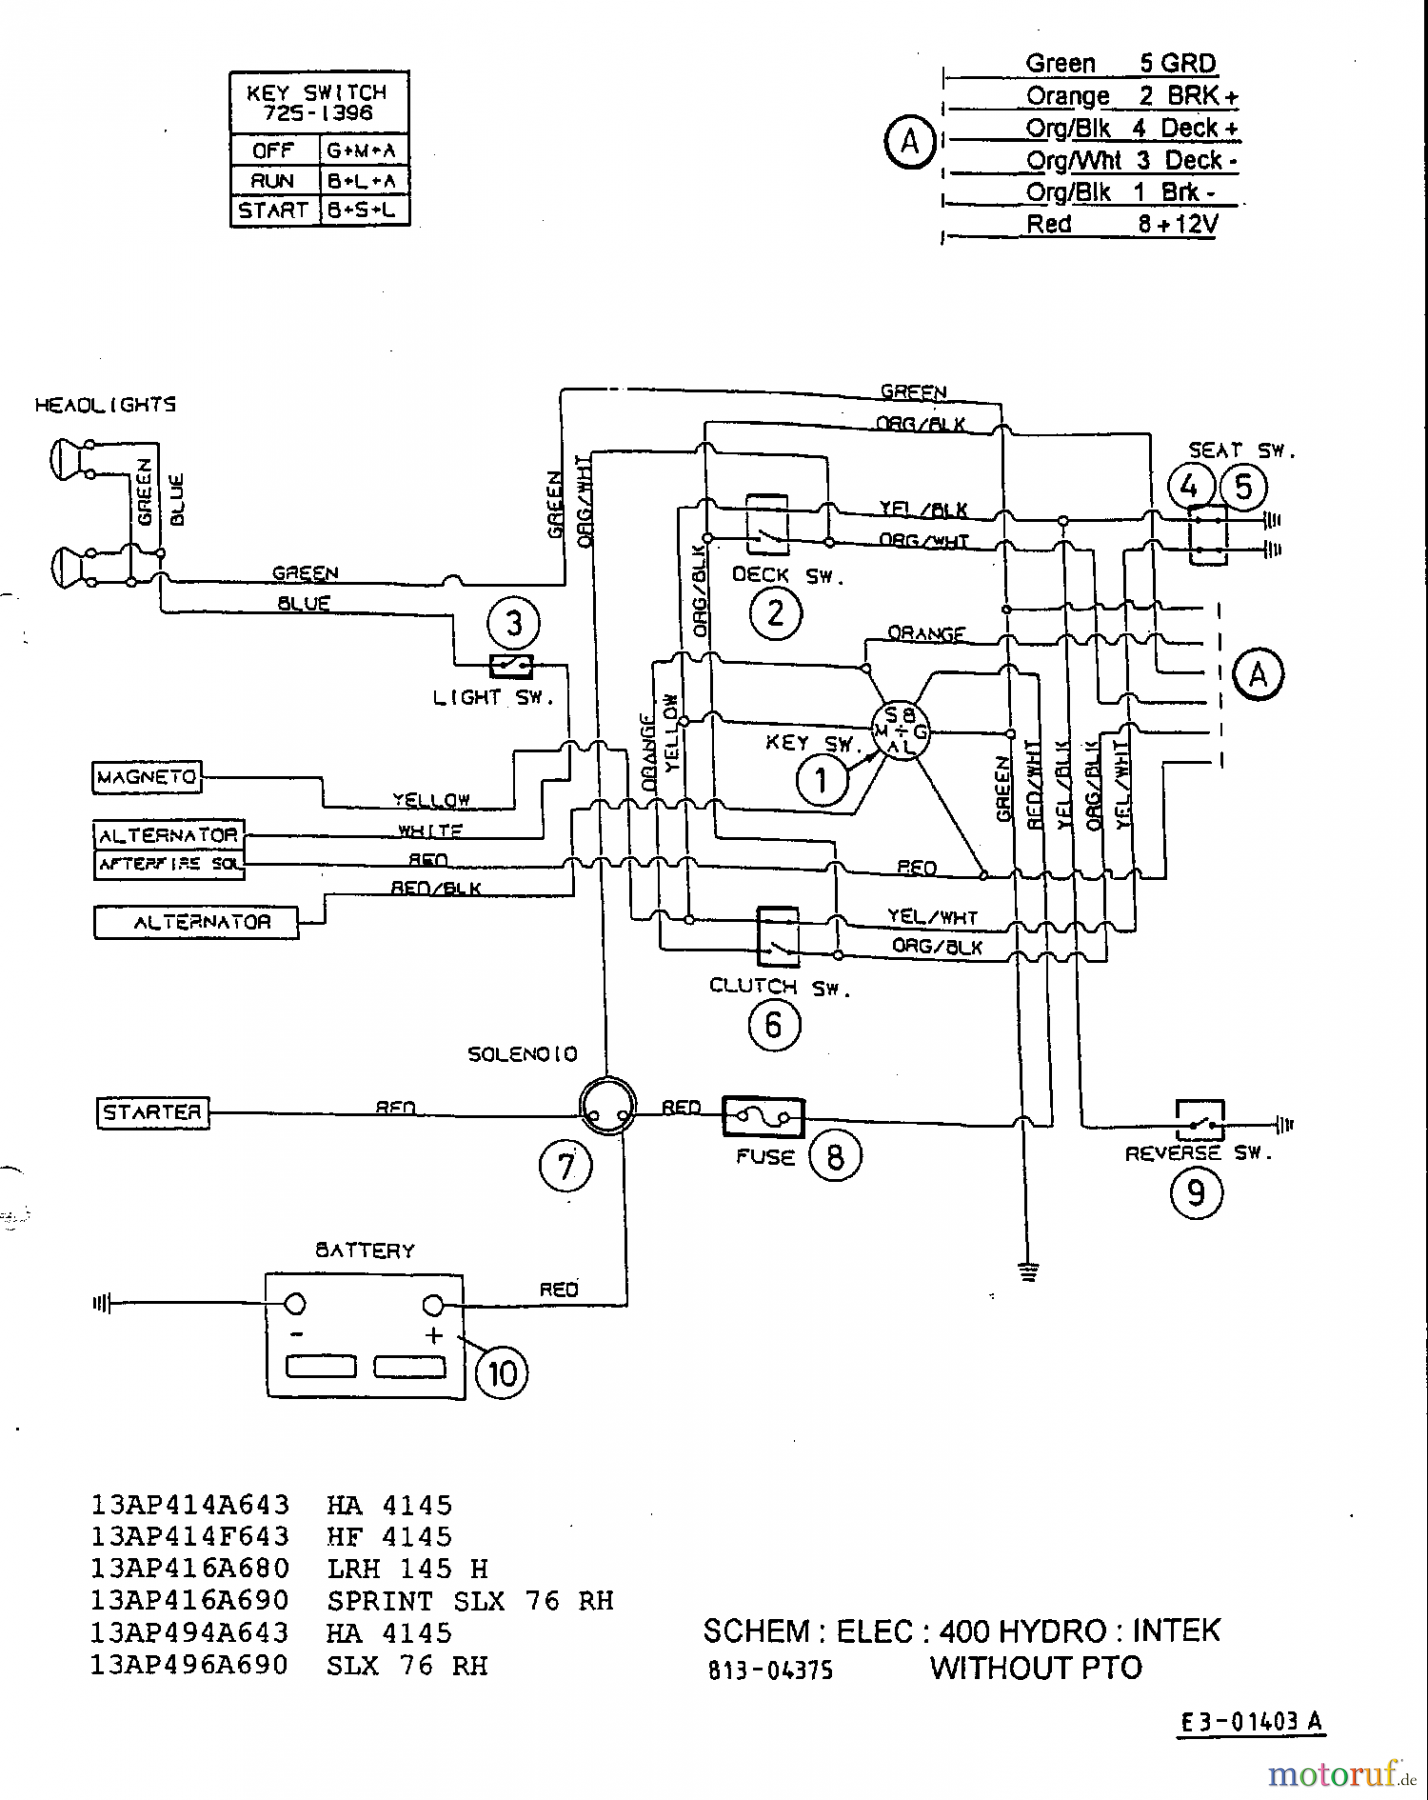 medium resolution of 145hp 42quot lawn tractor diagram and parts list for mtd ridingmower 46quot deck electric pto diagram and parts list for mtd ridingmower